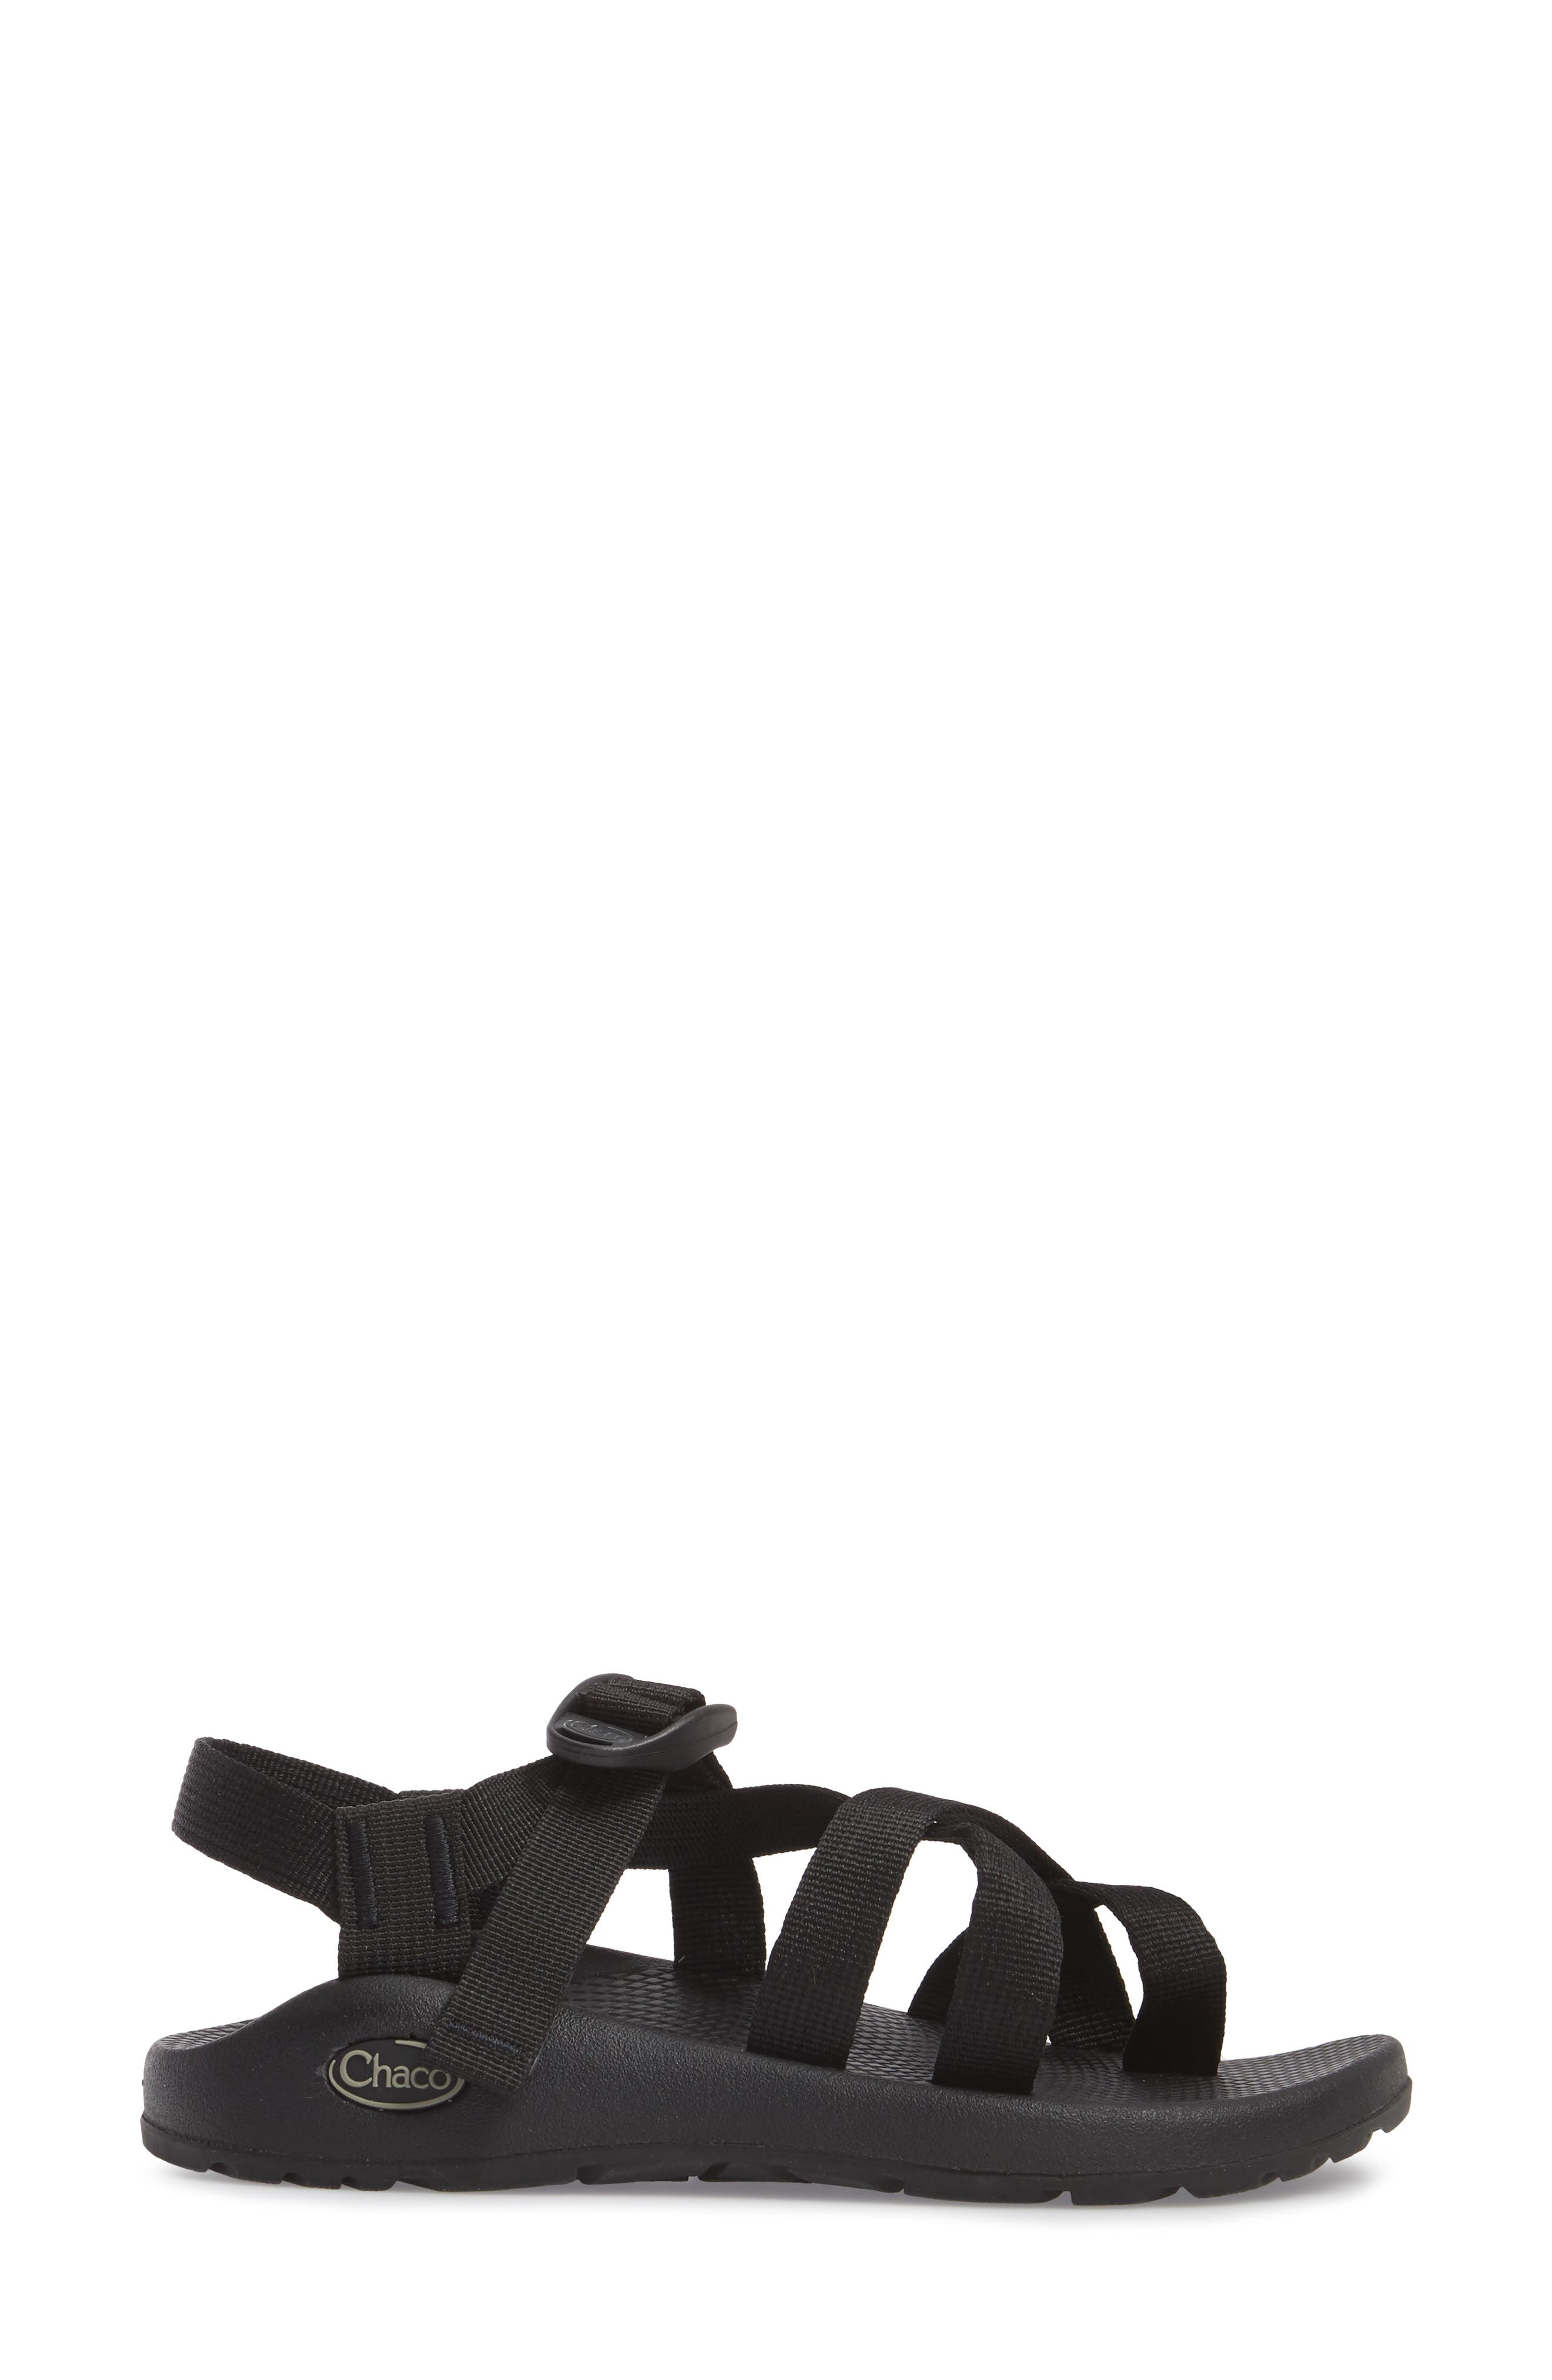 Z/2 Classic Sport Sandal,                             Alternate thumbnail 3, color,                             Black